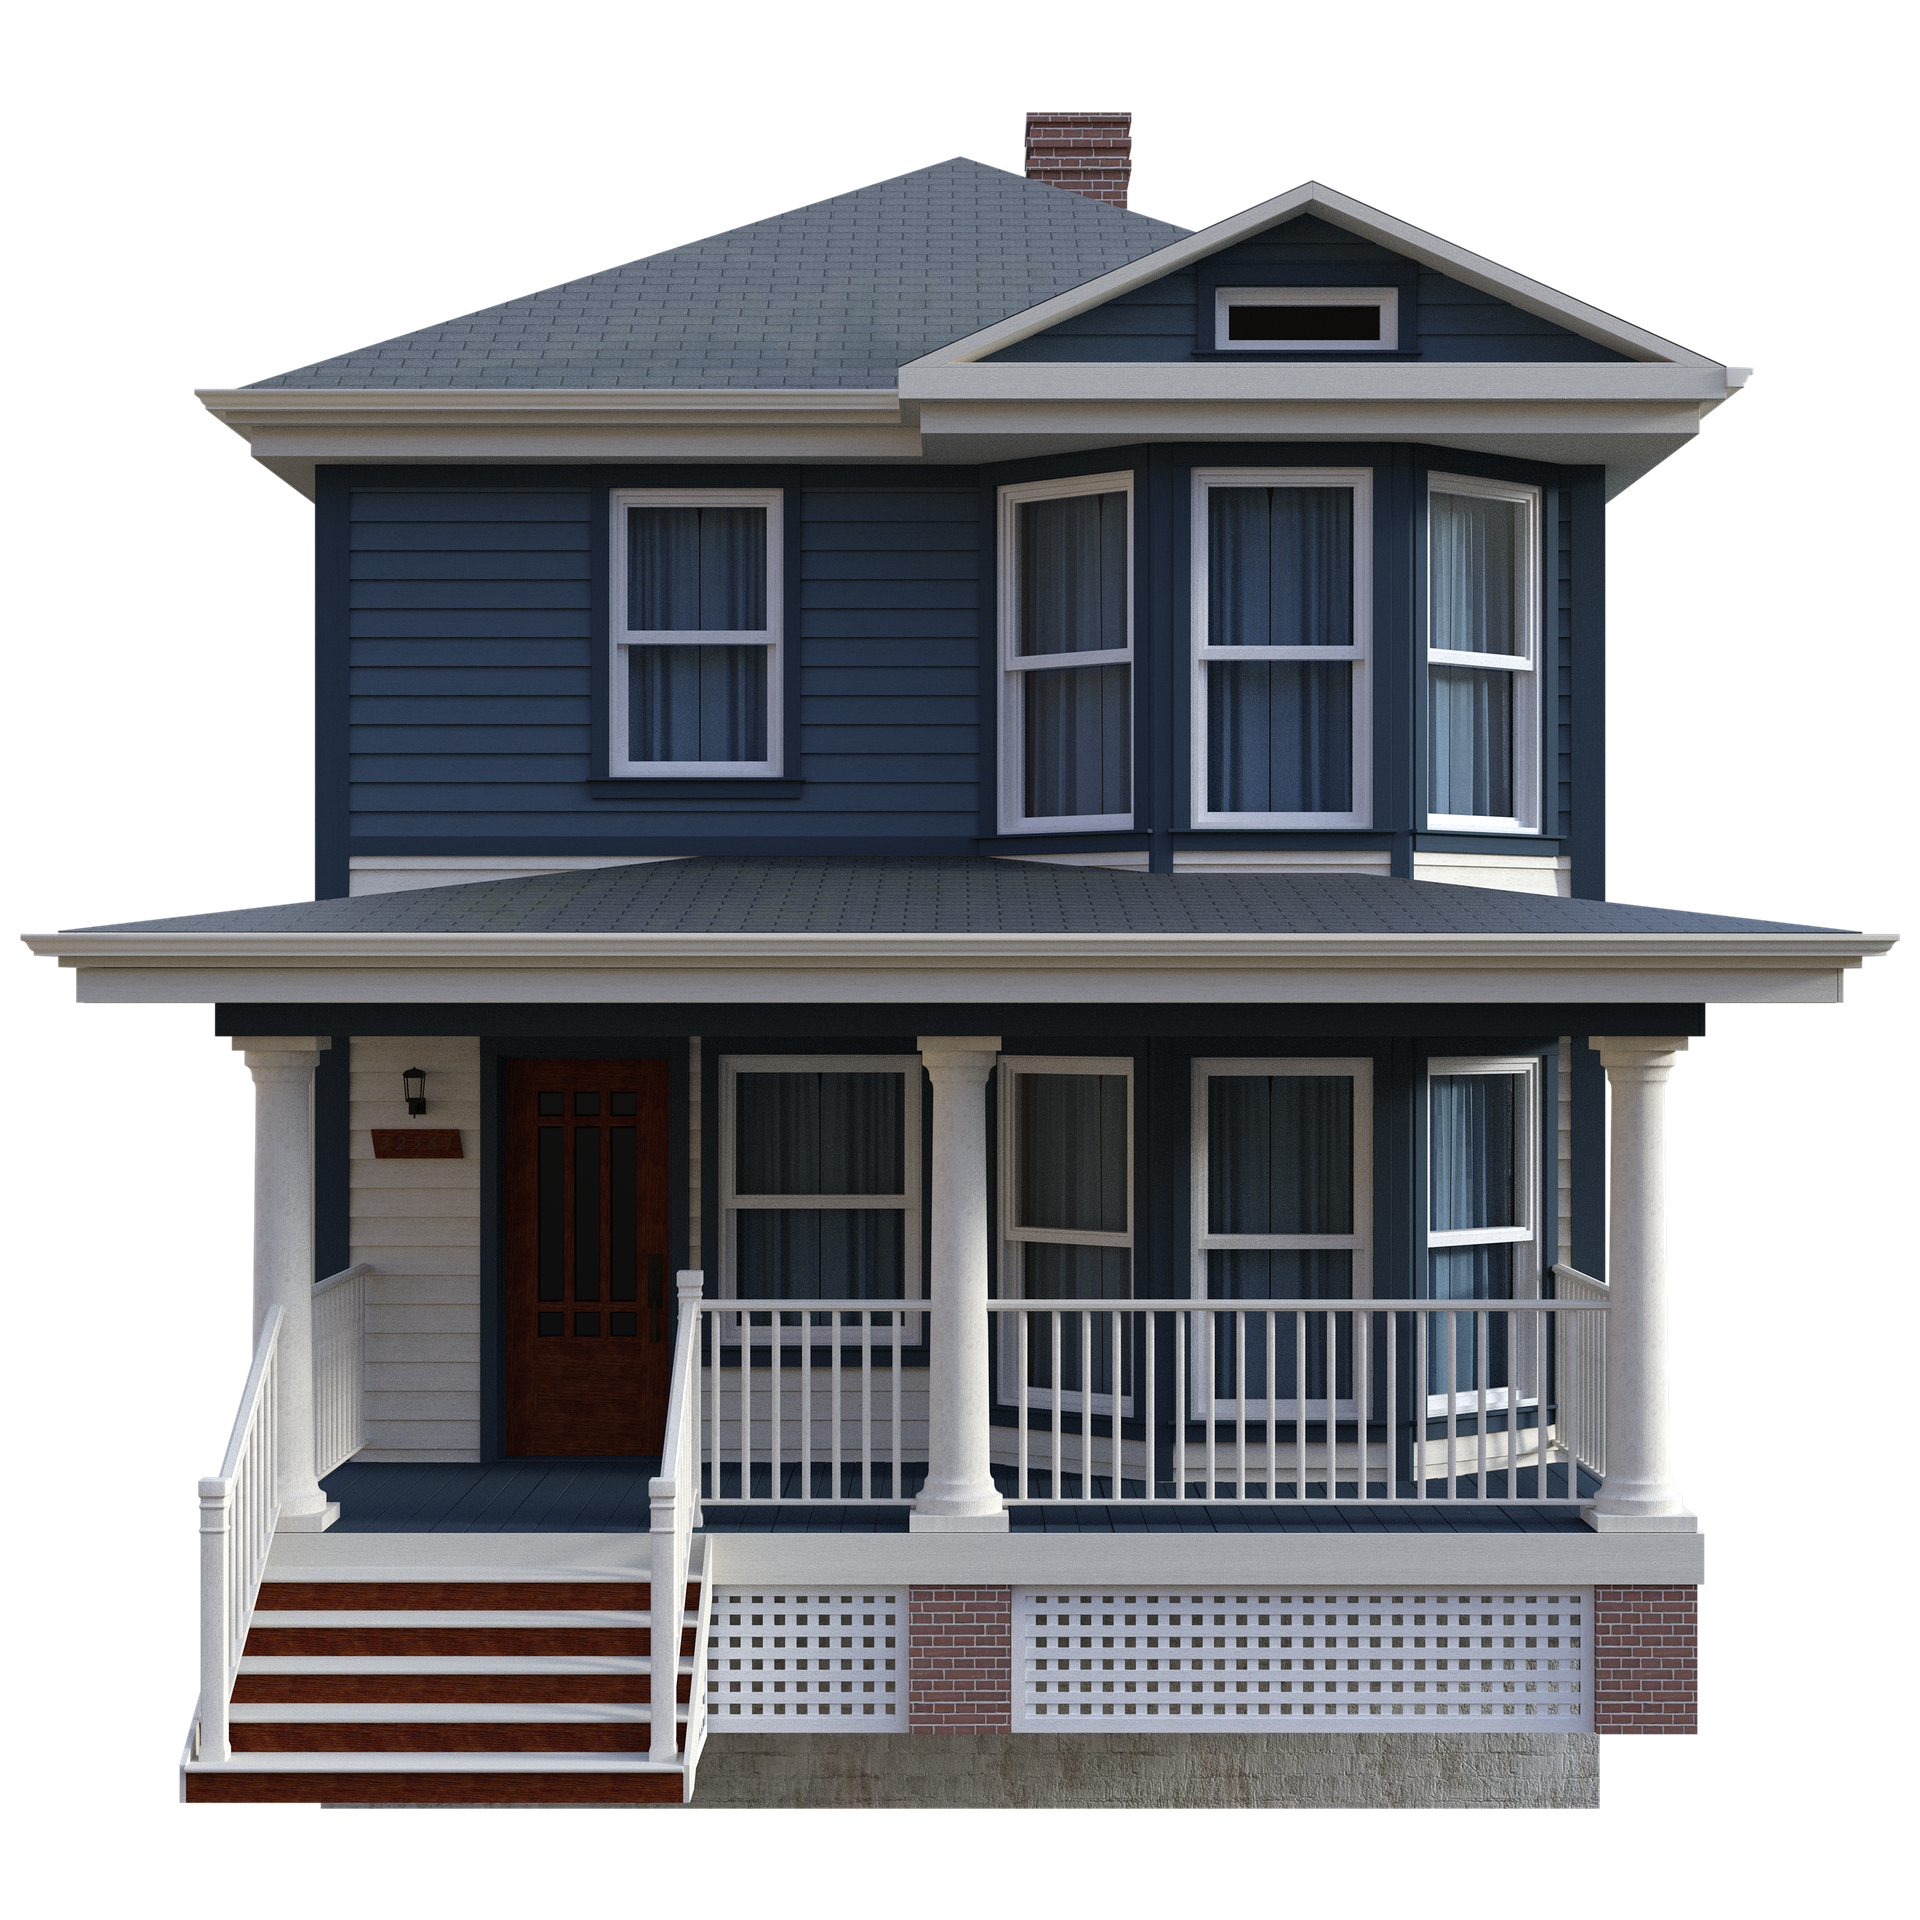 Home Structure